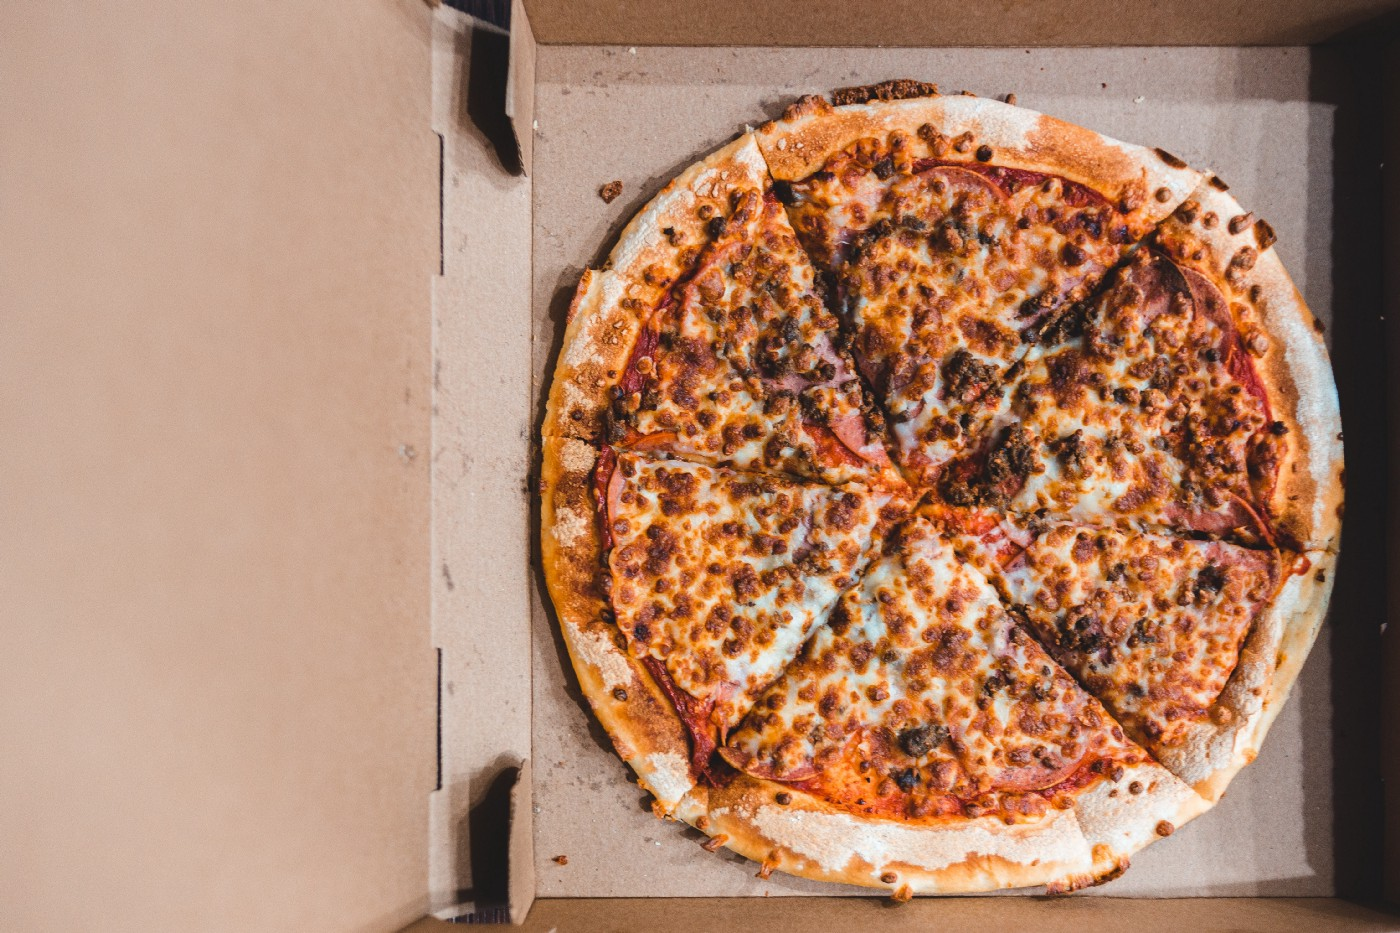 Overhead view of a pizza in an open cardboard delivery box.